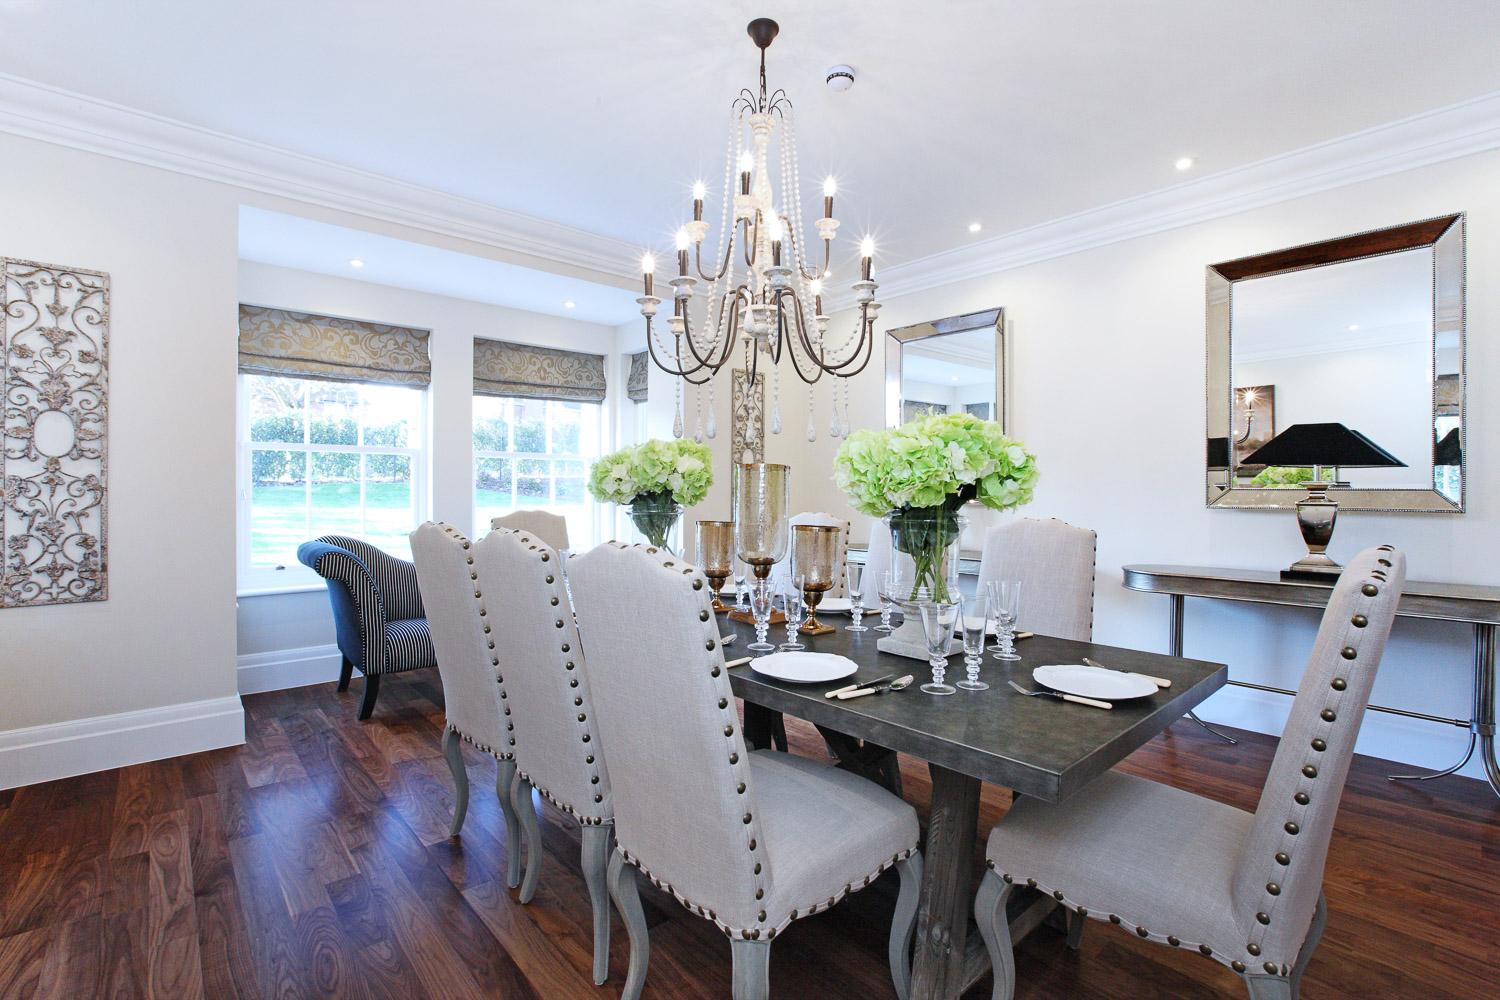 Luxury house in Esher Surrey. Luxury homes Surrey, new homes Esher. Wentworth House.